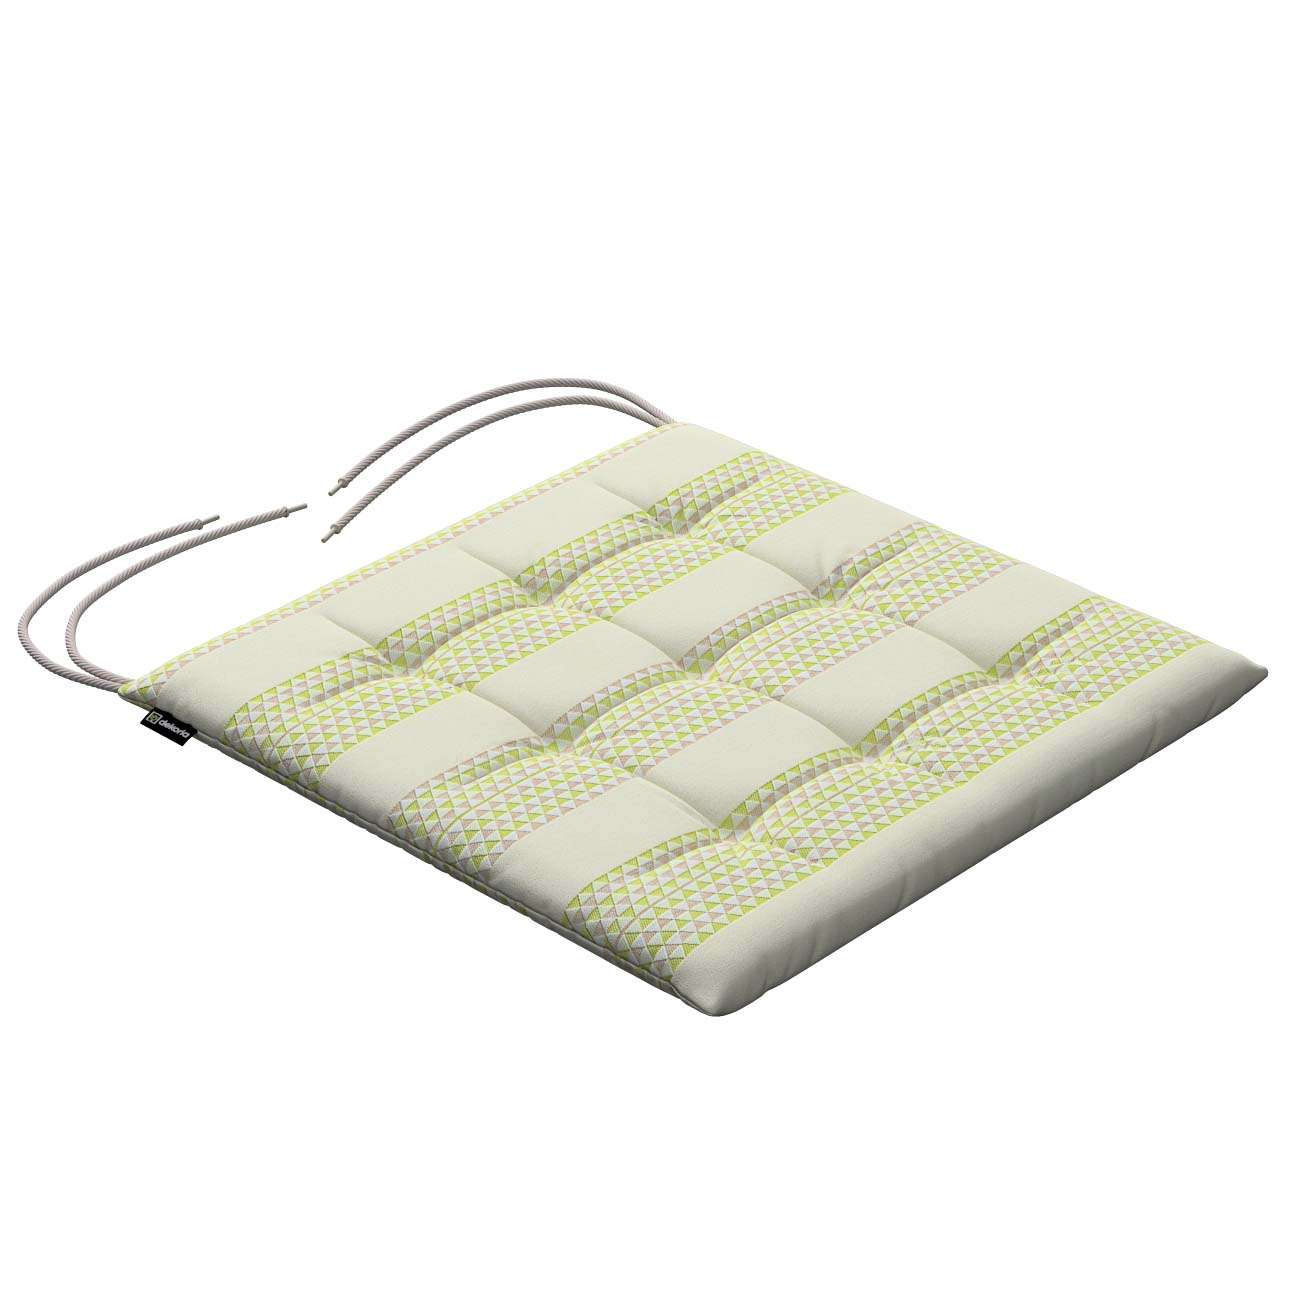 Karol seat cushion with ties 40 x 40 x 3,5 cm (16 x 16 x1,5 inch) in collection Rustica, fabric: 140-35